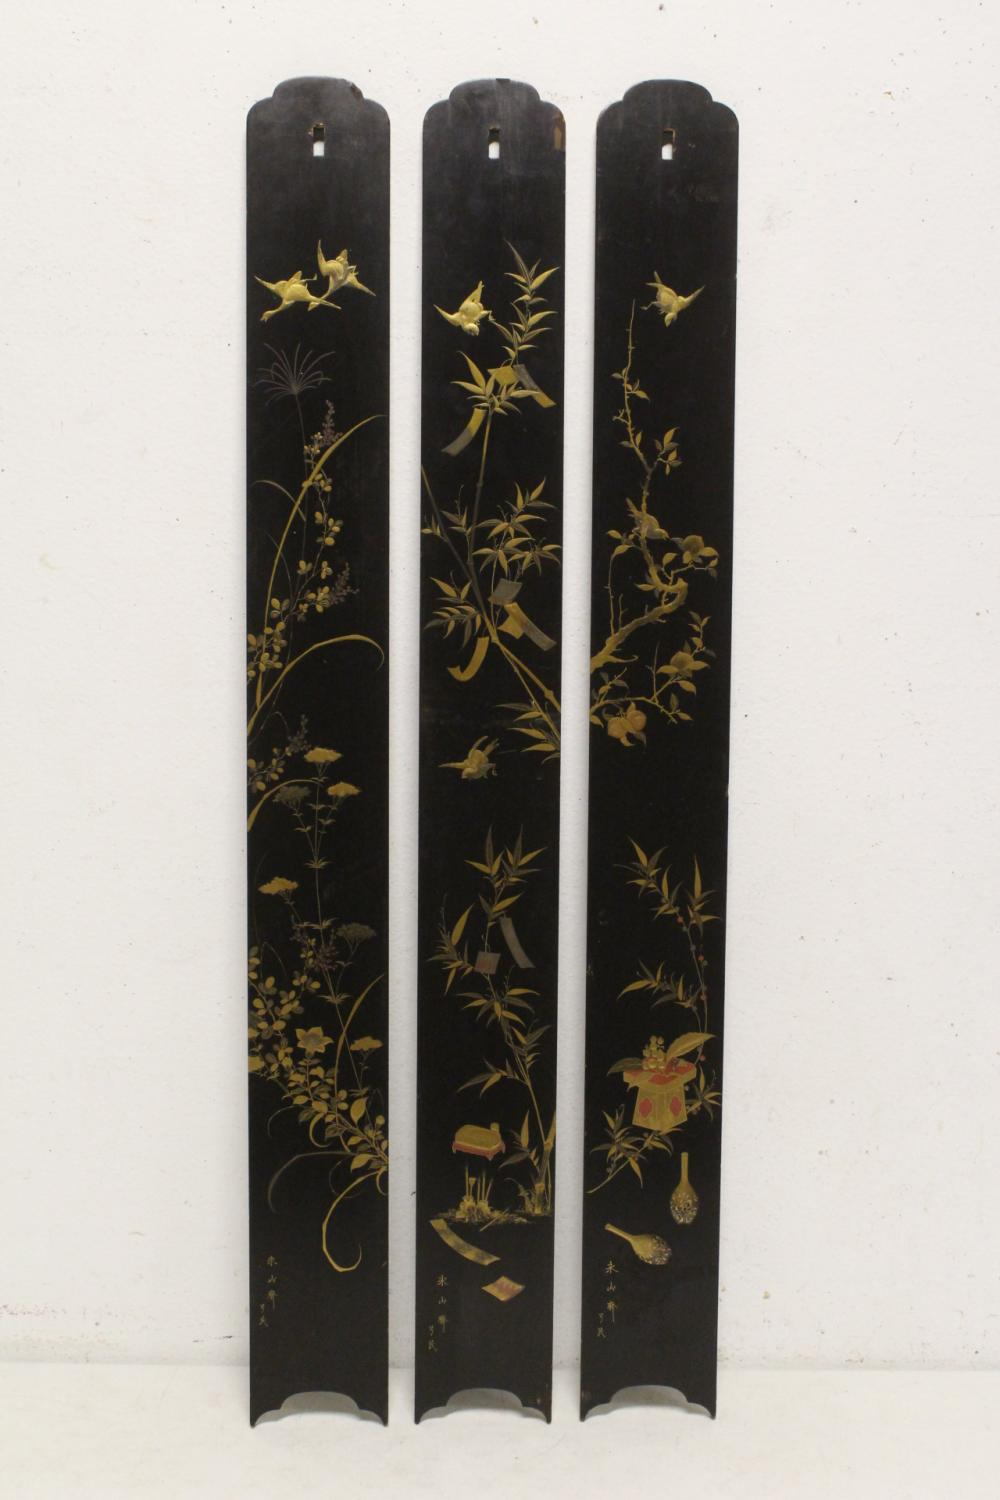 3 Japanese antique lacquer panels, signed